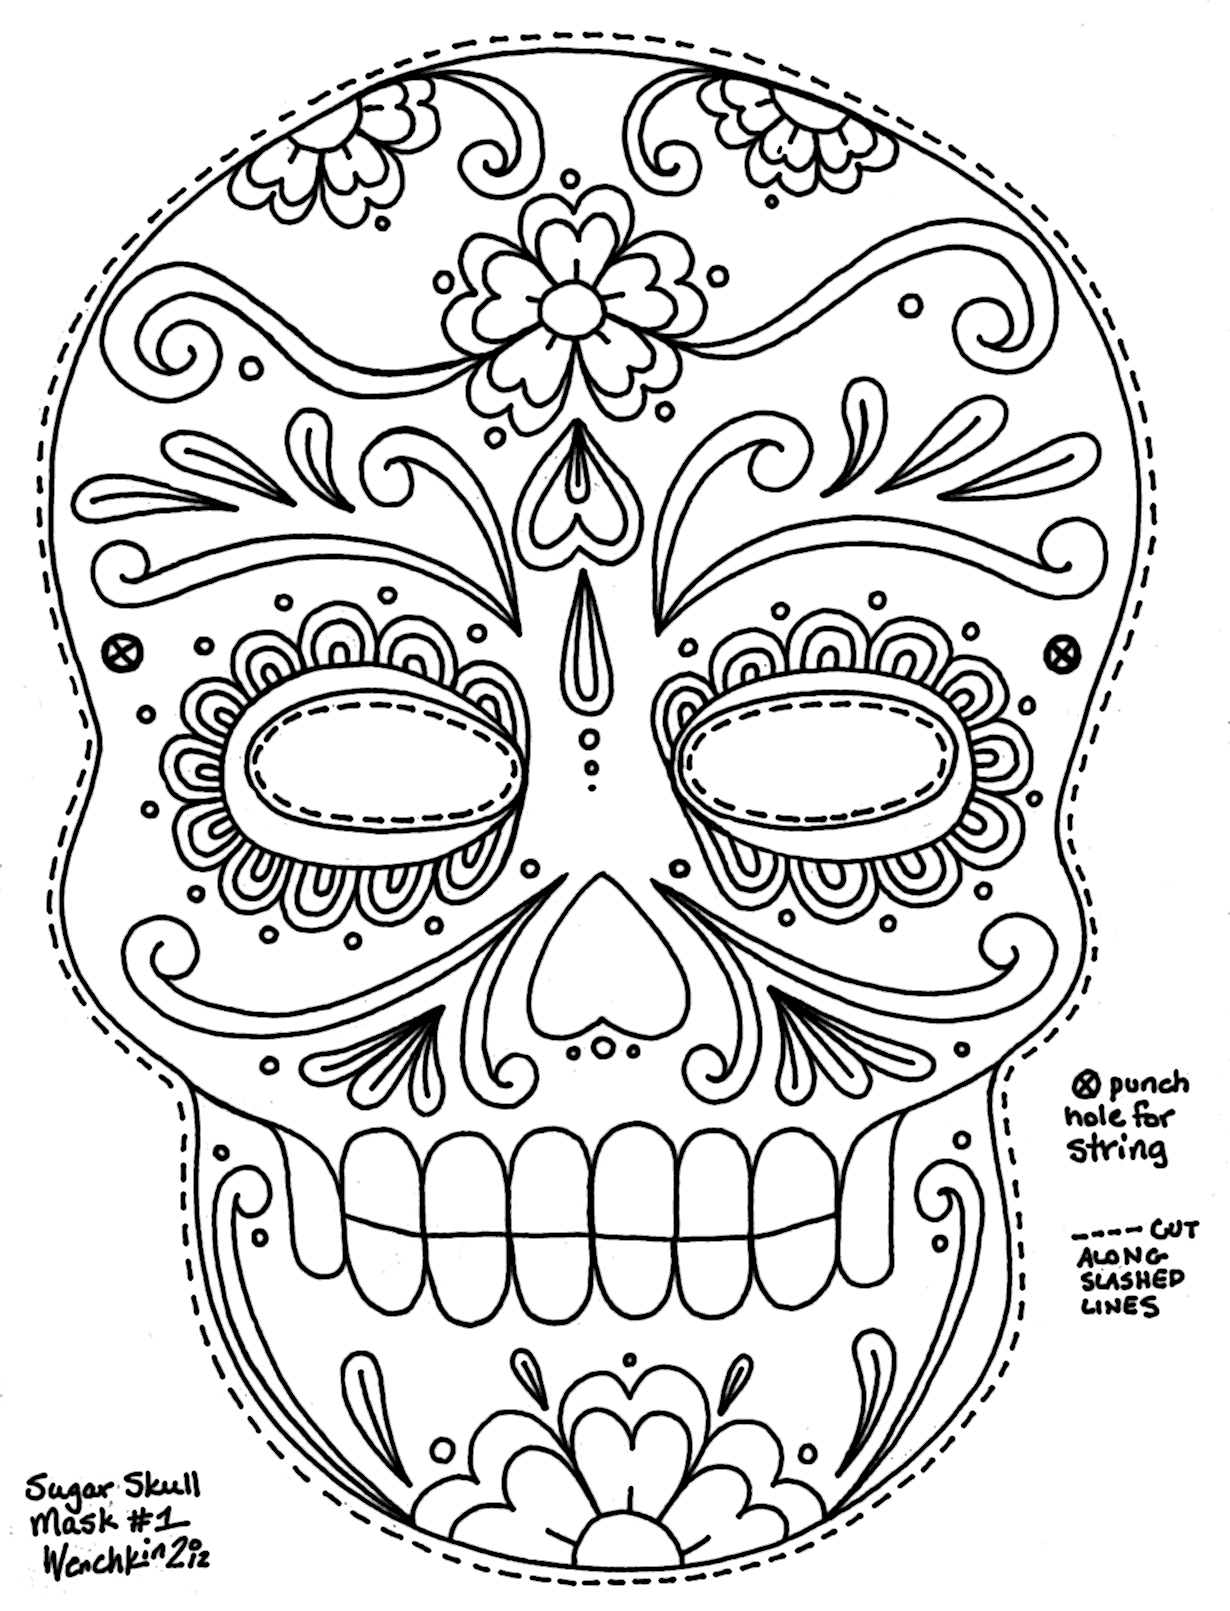 Mask coloring pages to download and print for free